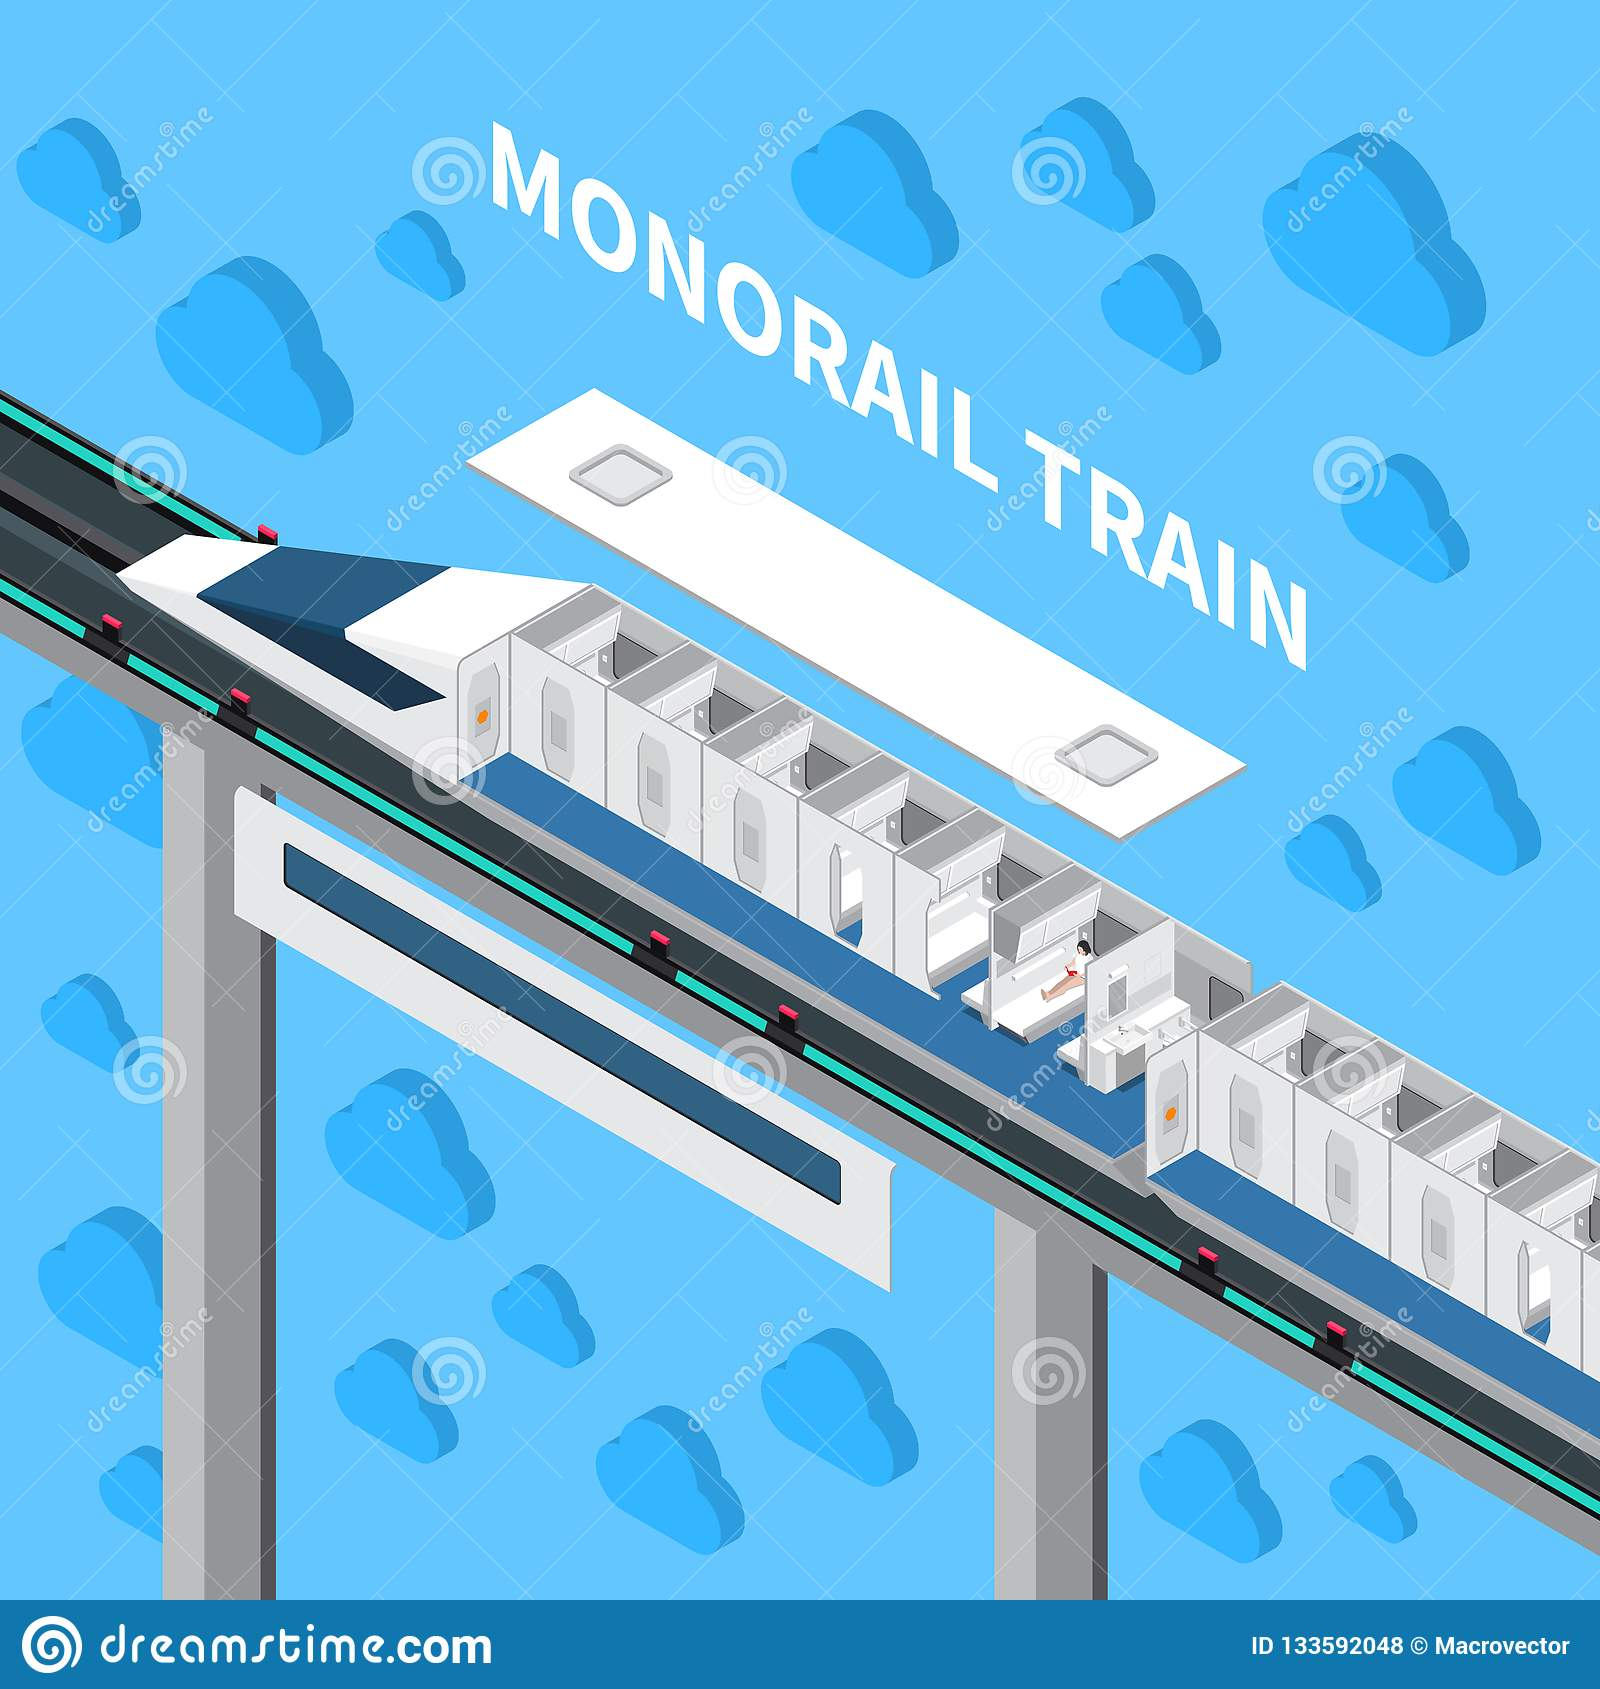 Monorail Train Isometric Composition